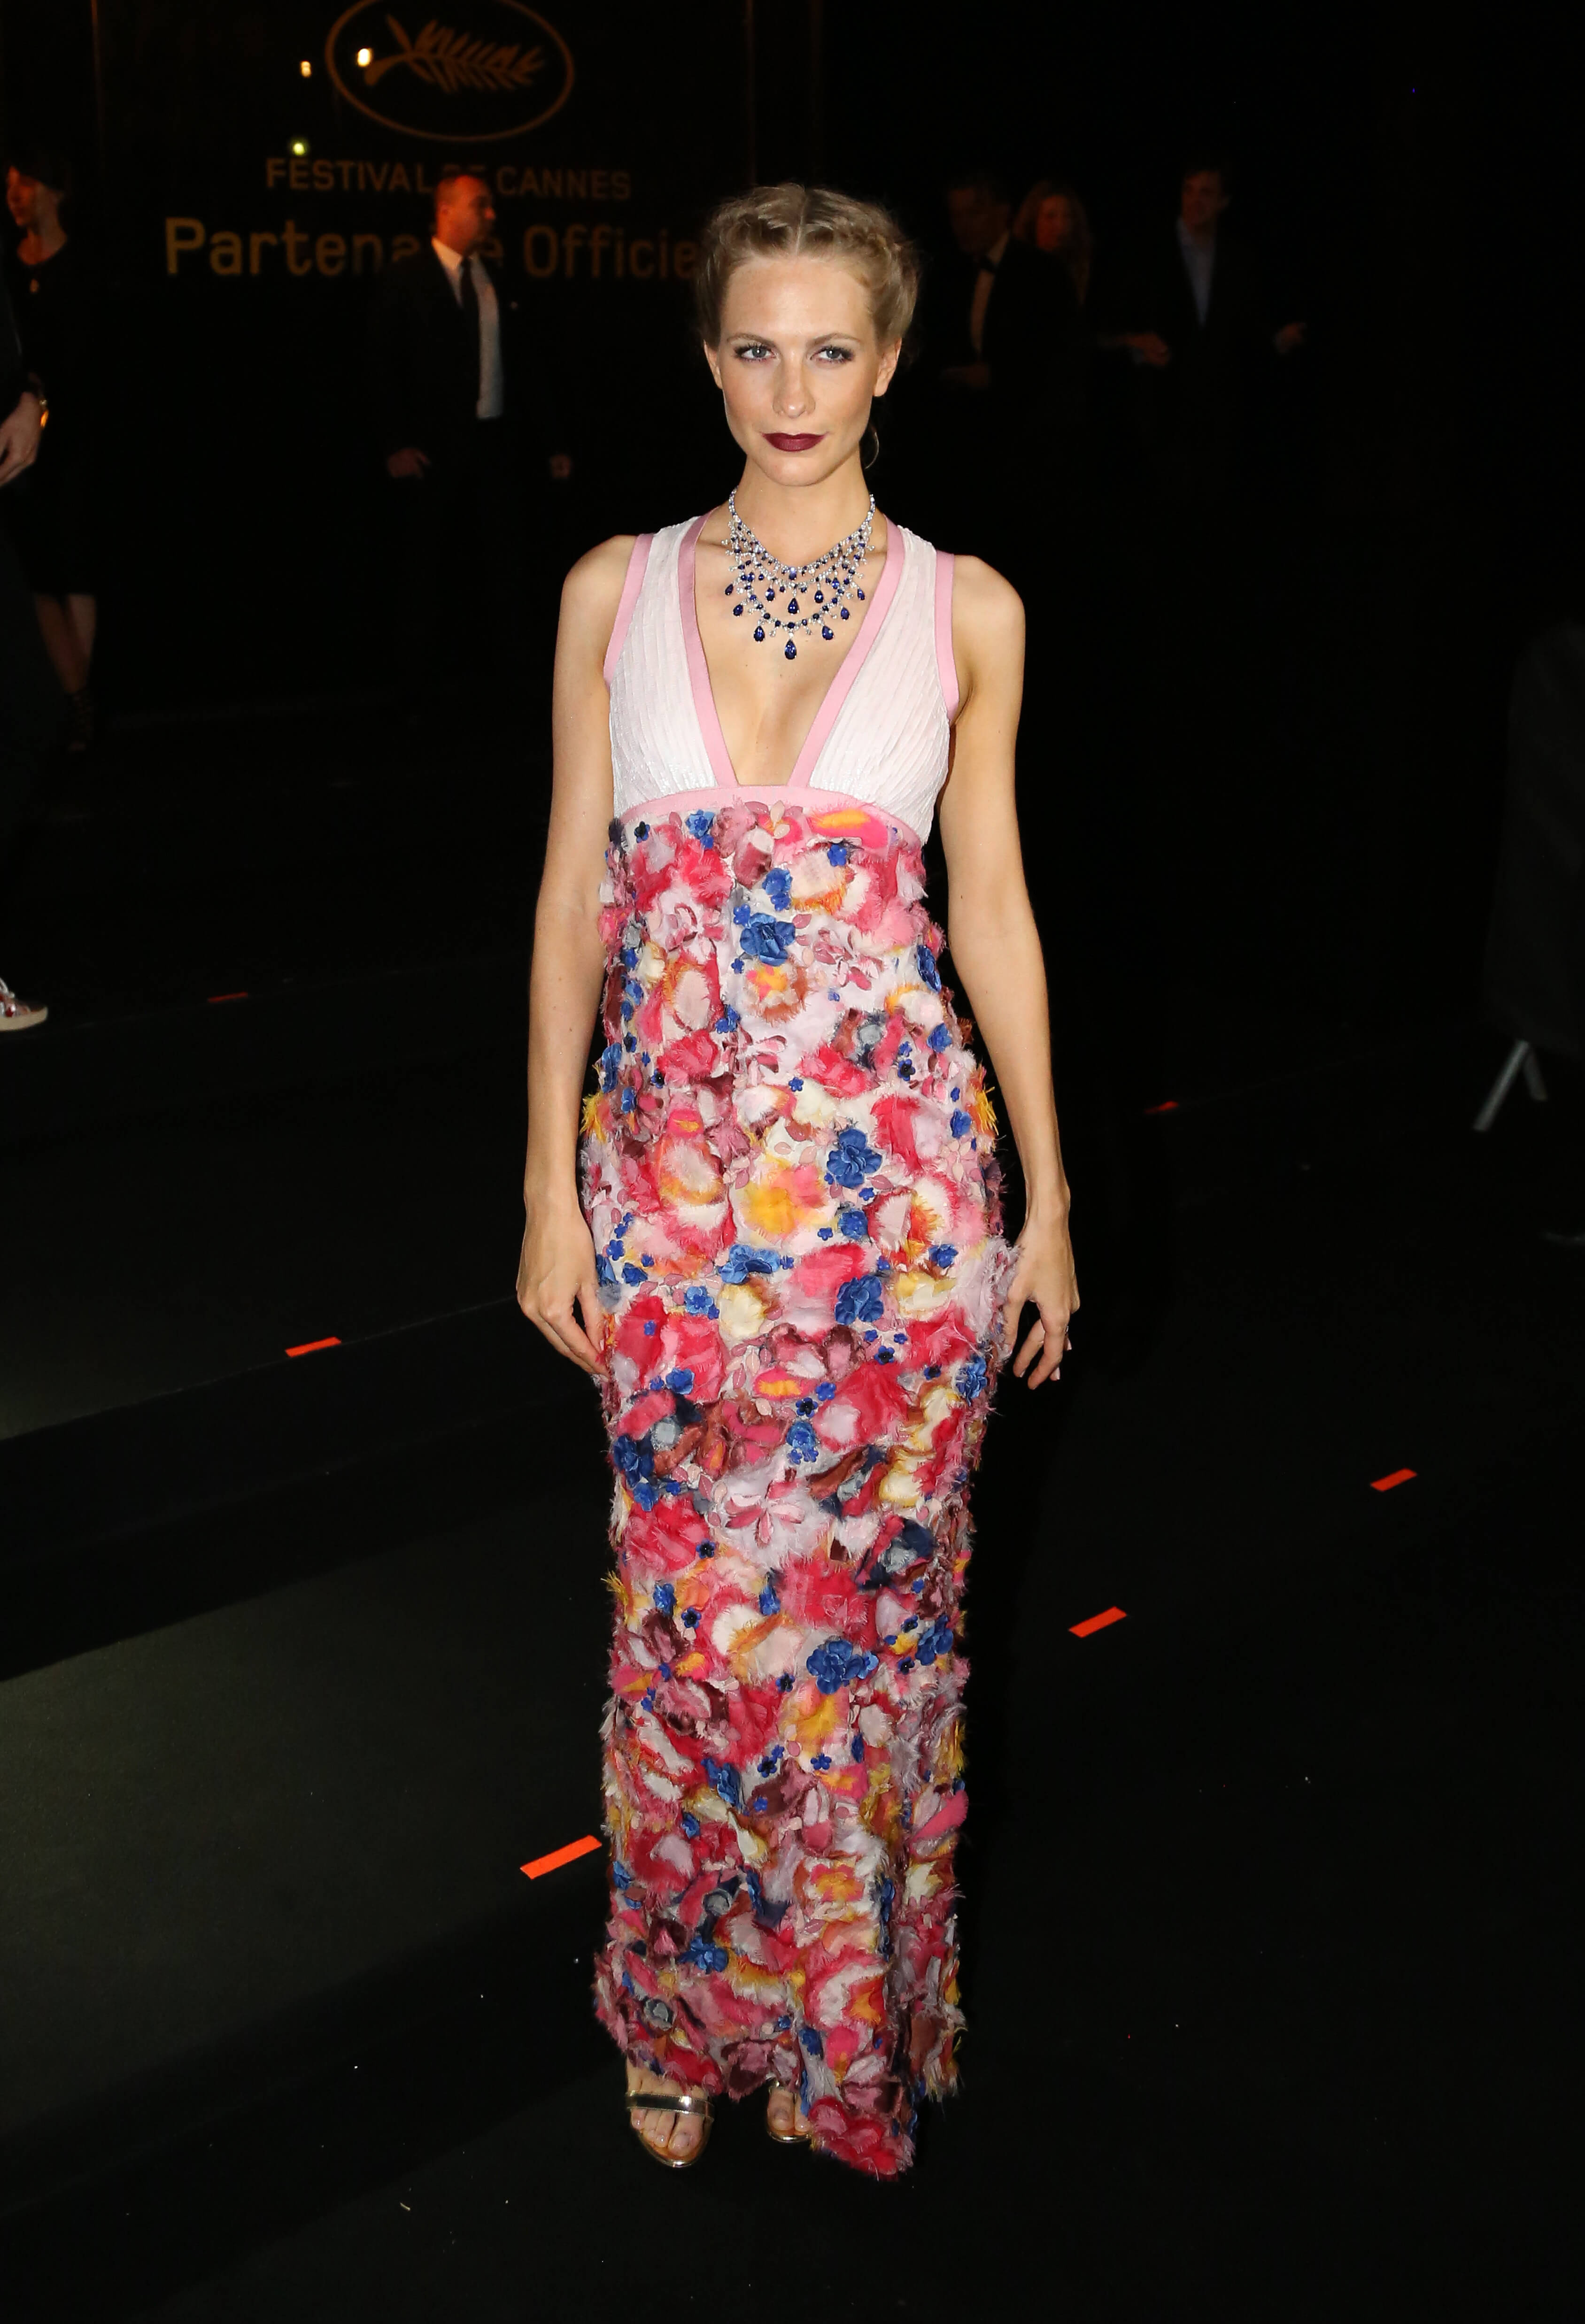 Poppy Delevingne long dress pic